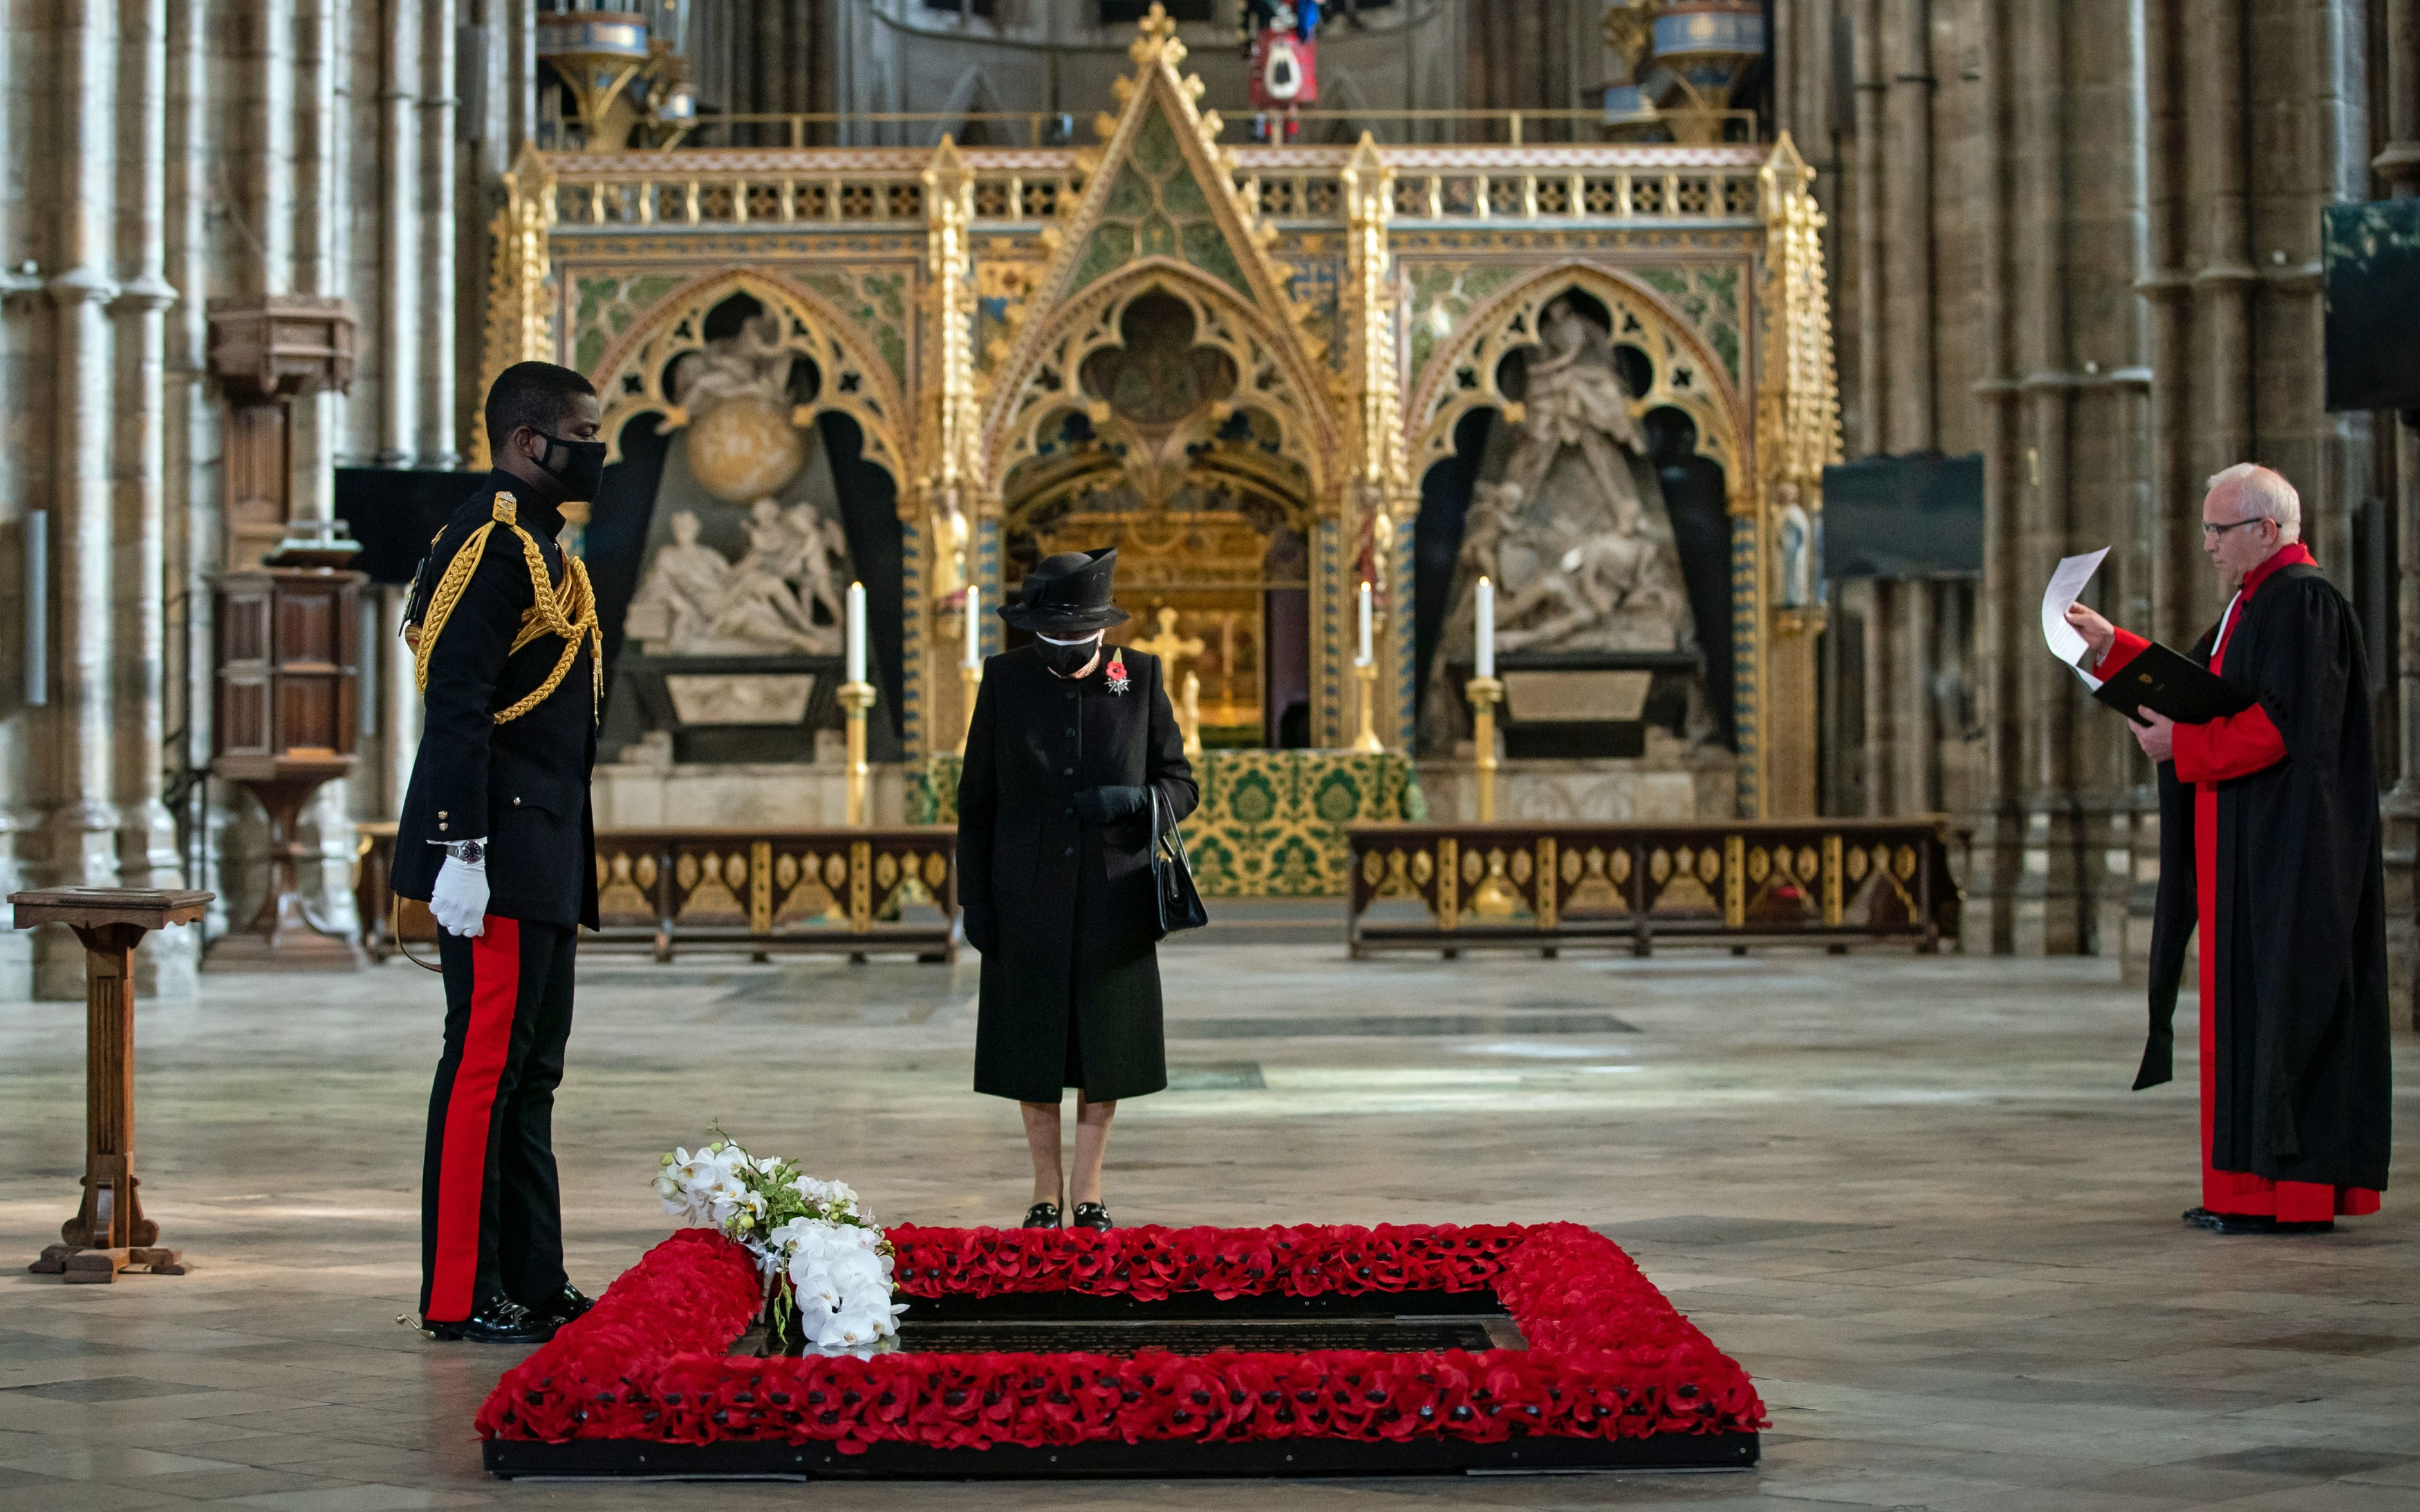 The Dean of Westminster Dr David Hoyle (right) watches as the flowers are placed on the tomb